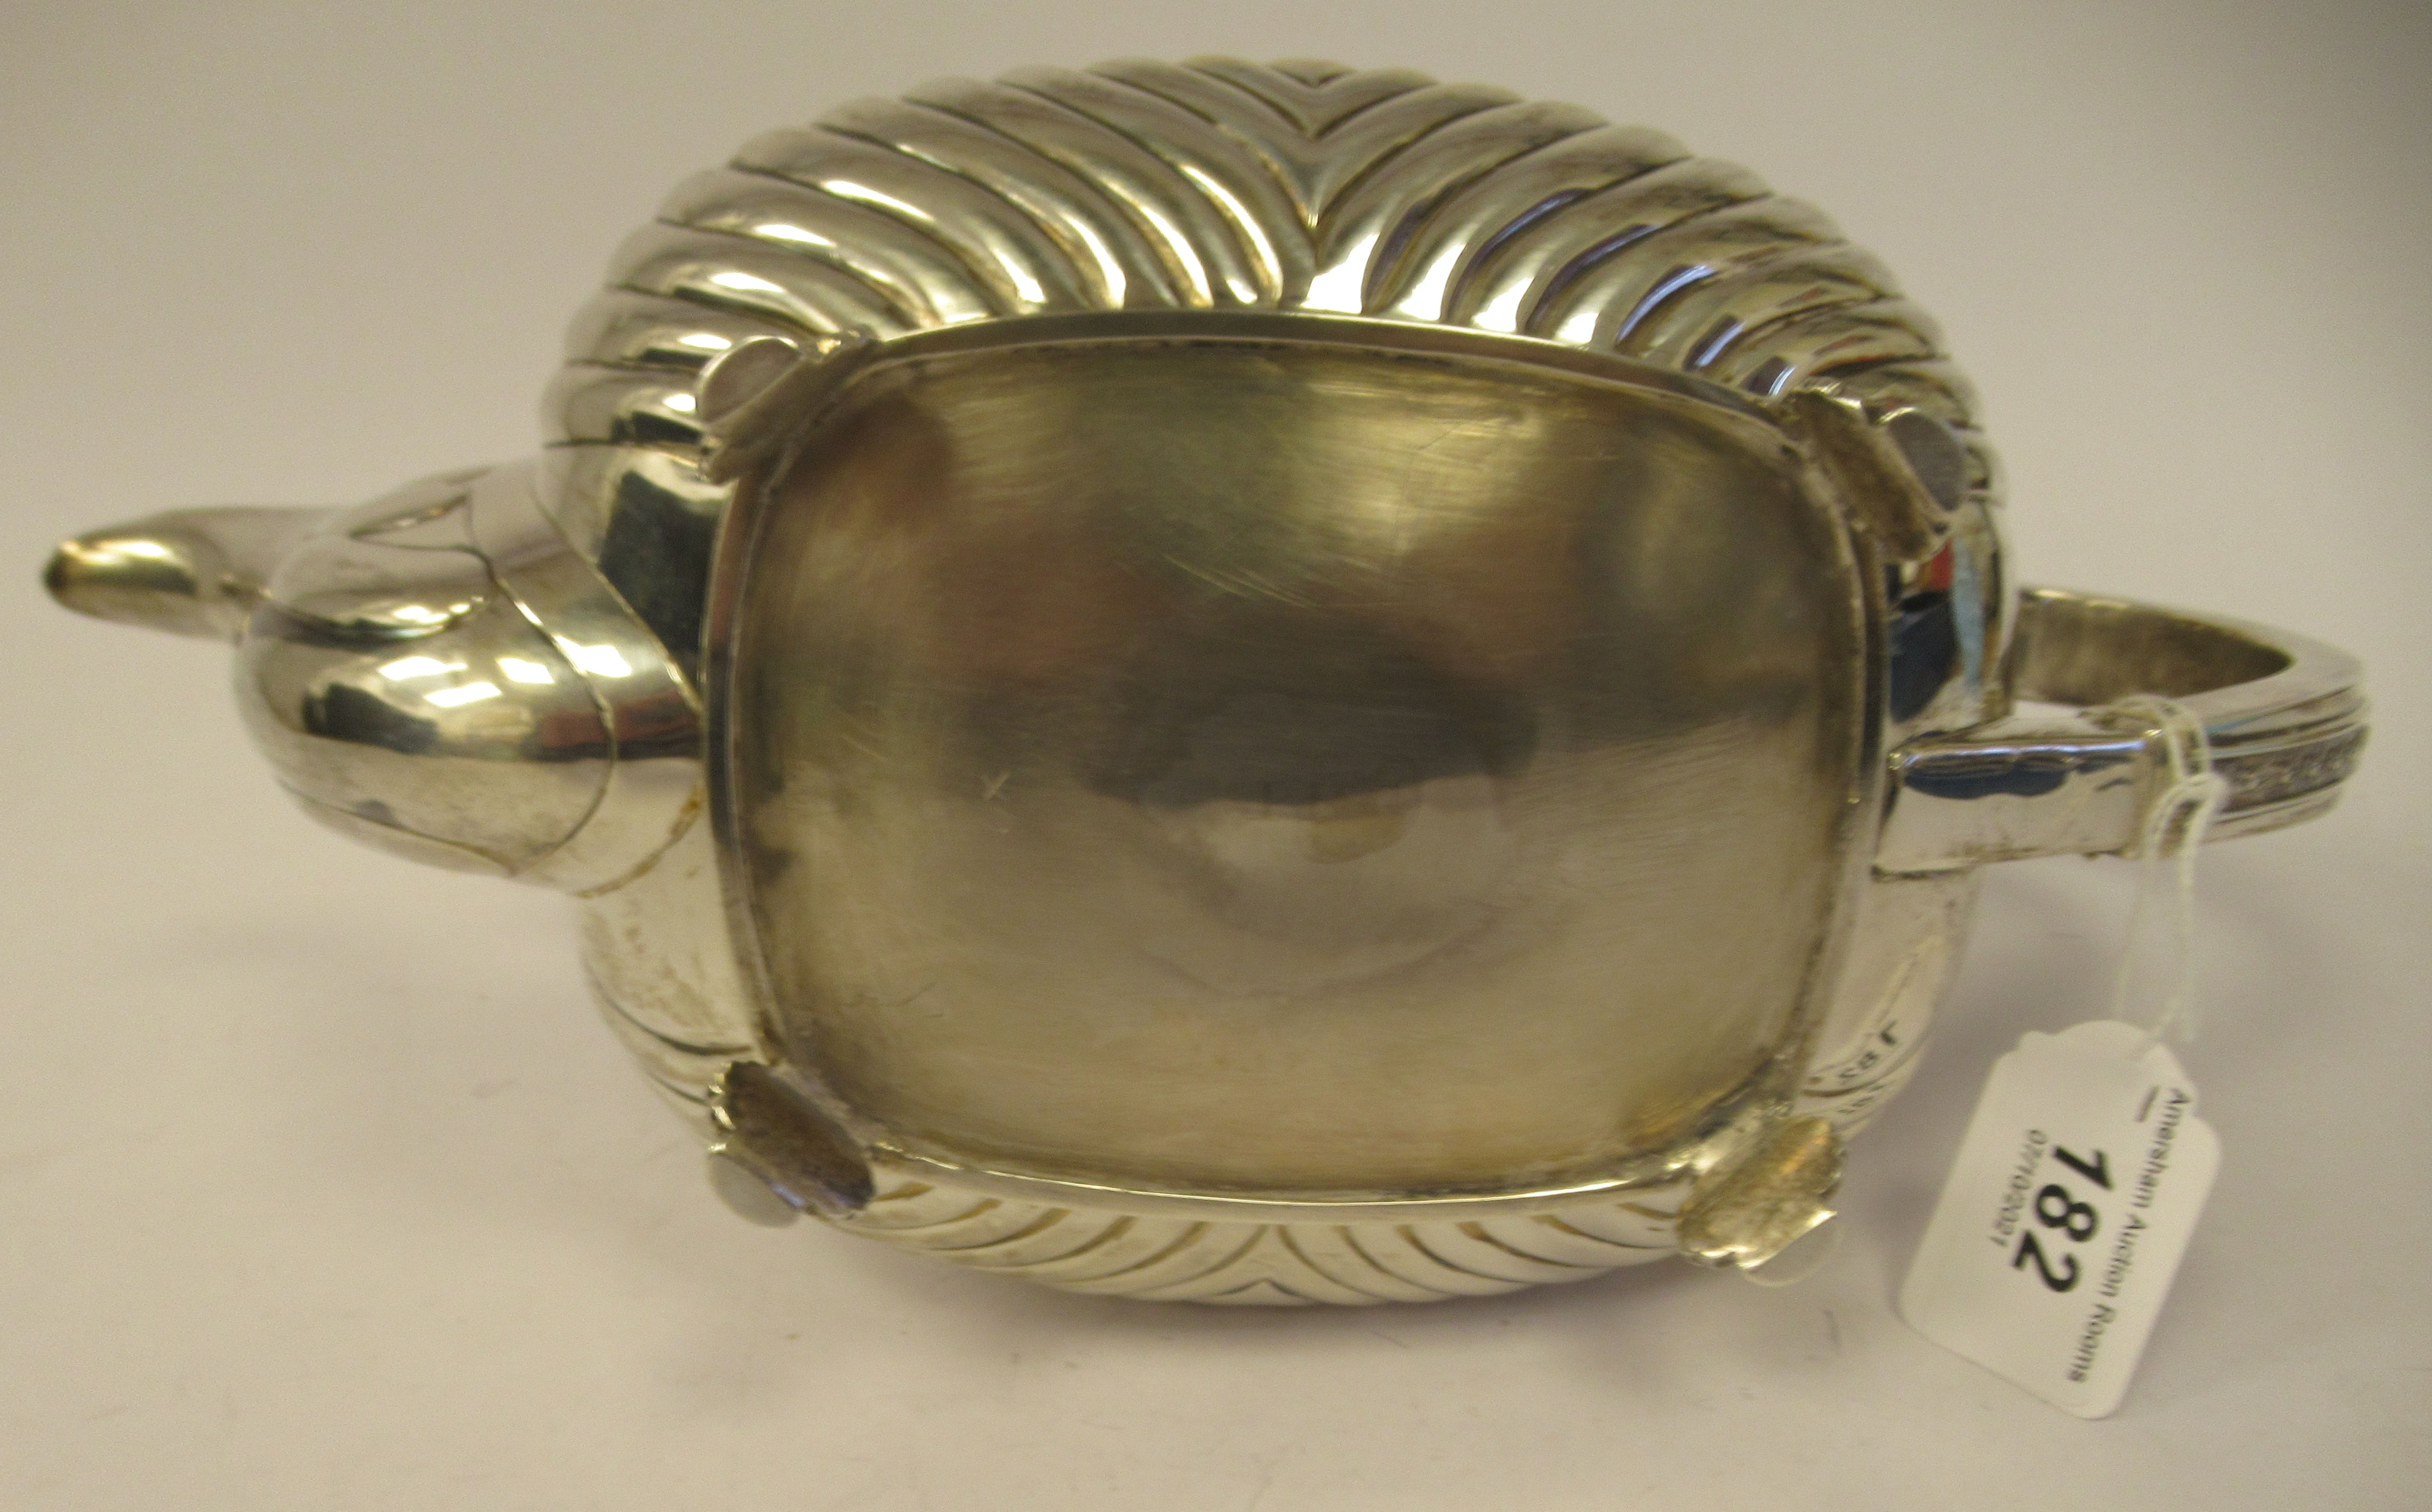 A George III silver teapot of squat, bulbous circular form with floral and foliate cast ornament, - Image 6 of 7